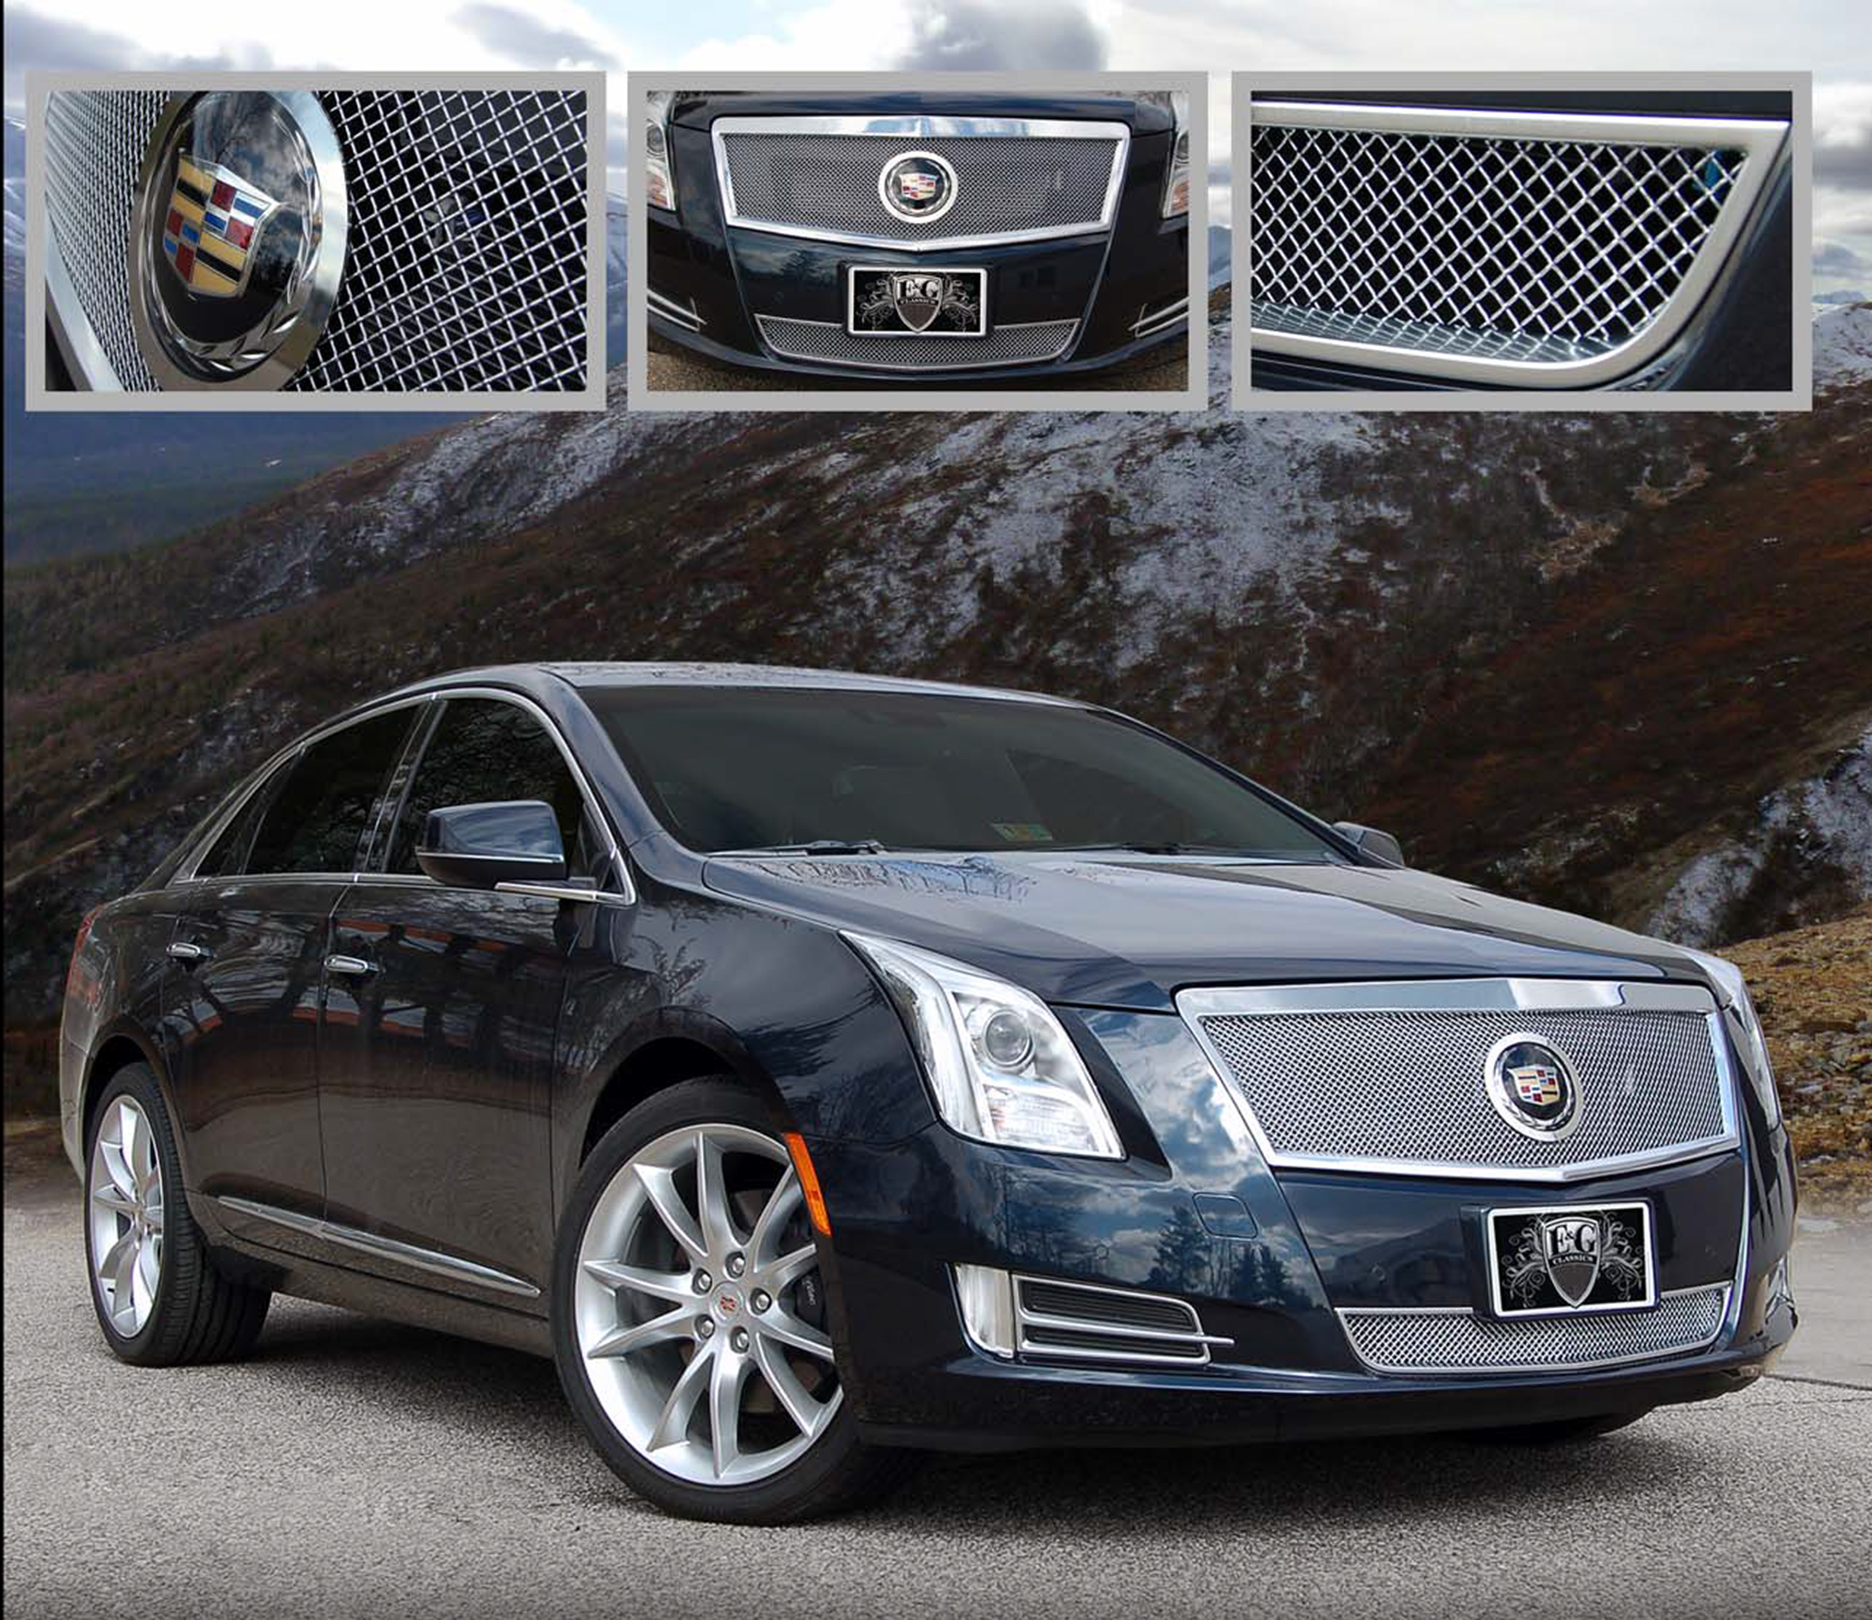 e g classics cadillac xts grille wing body kit. Black Bedroom Furniture Sets. Home Design Ideas